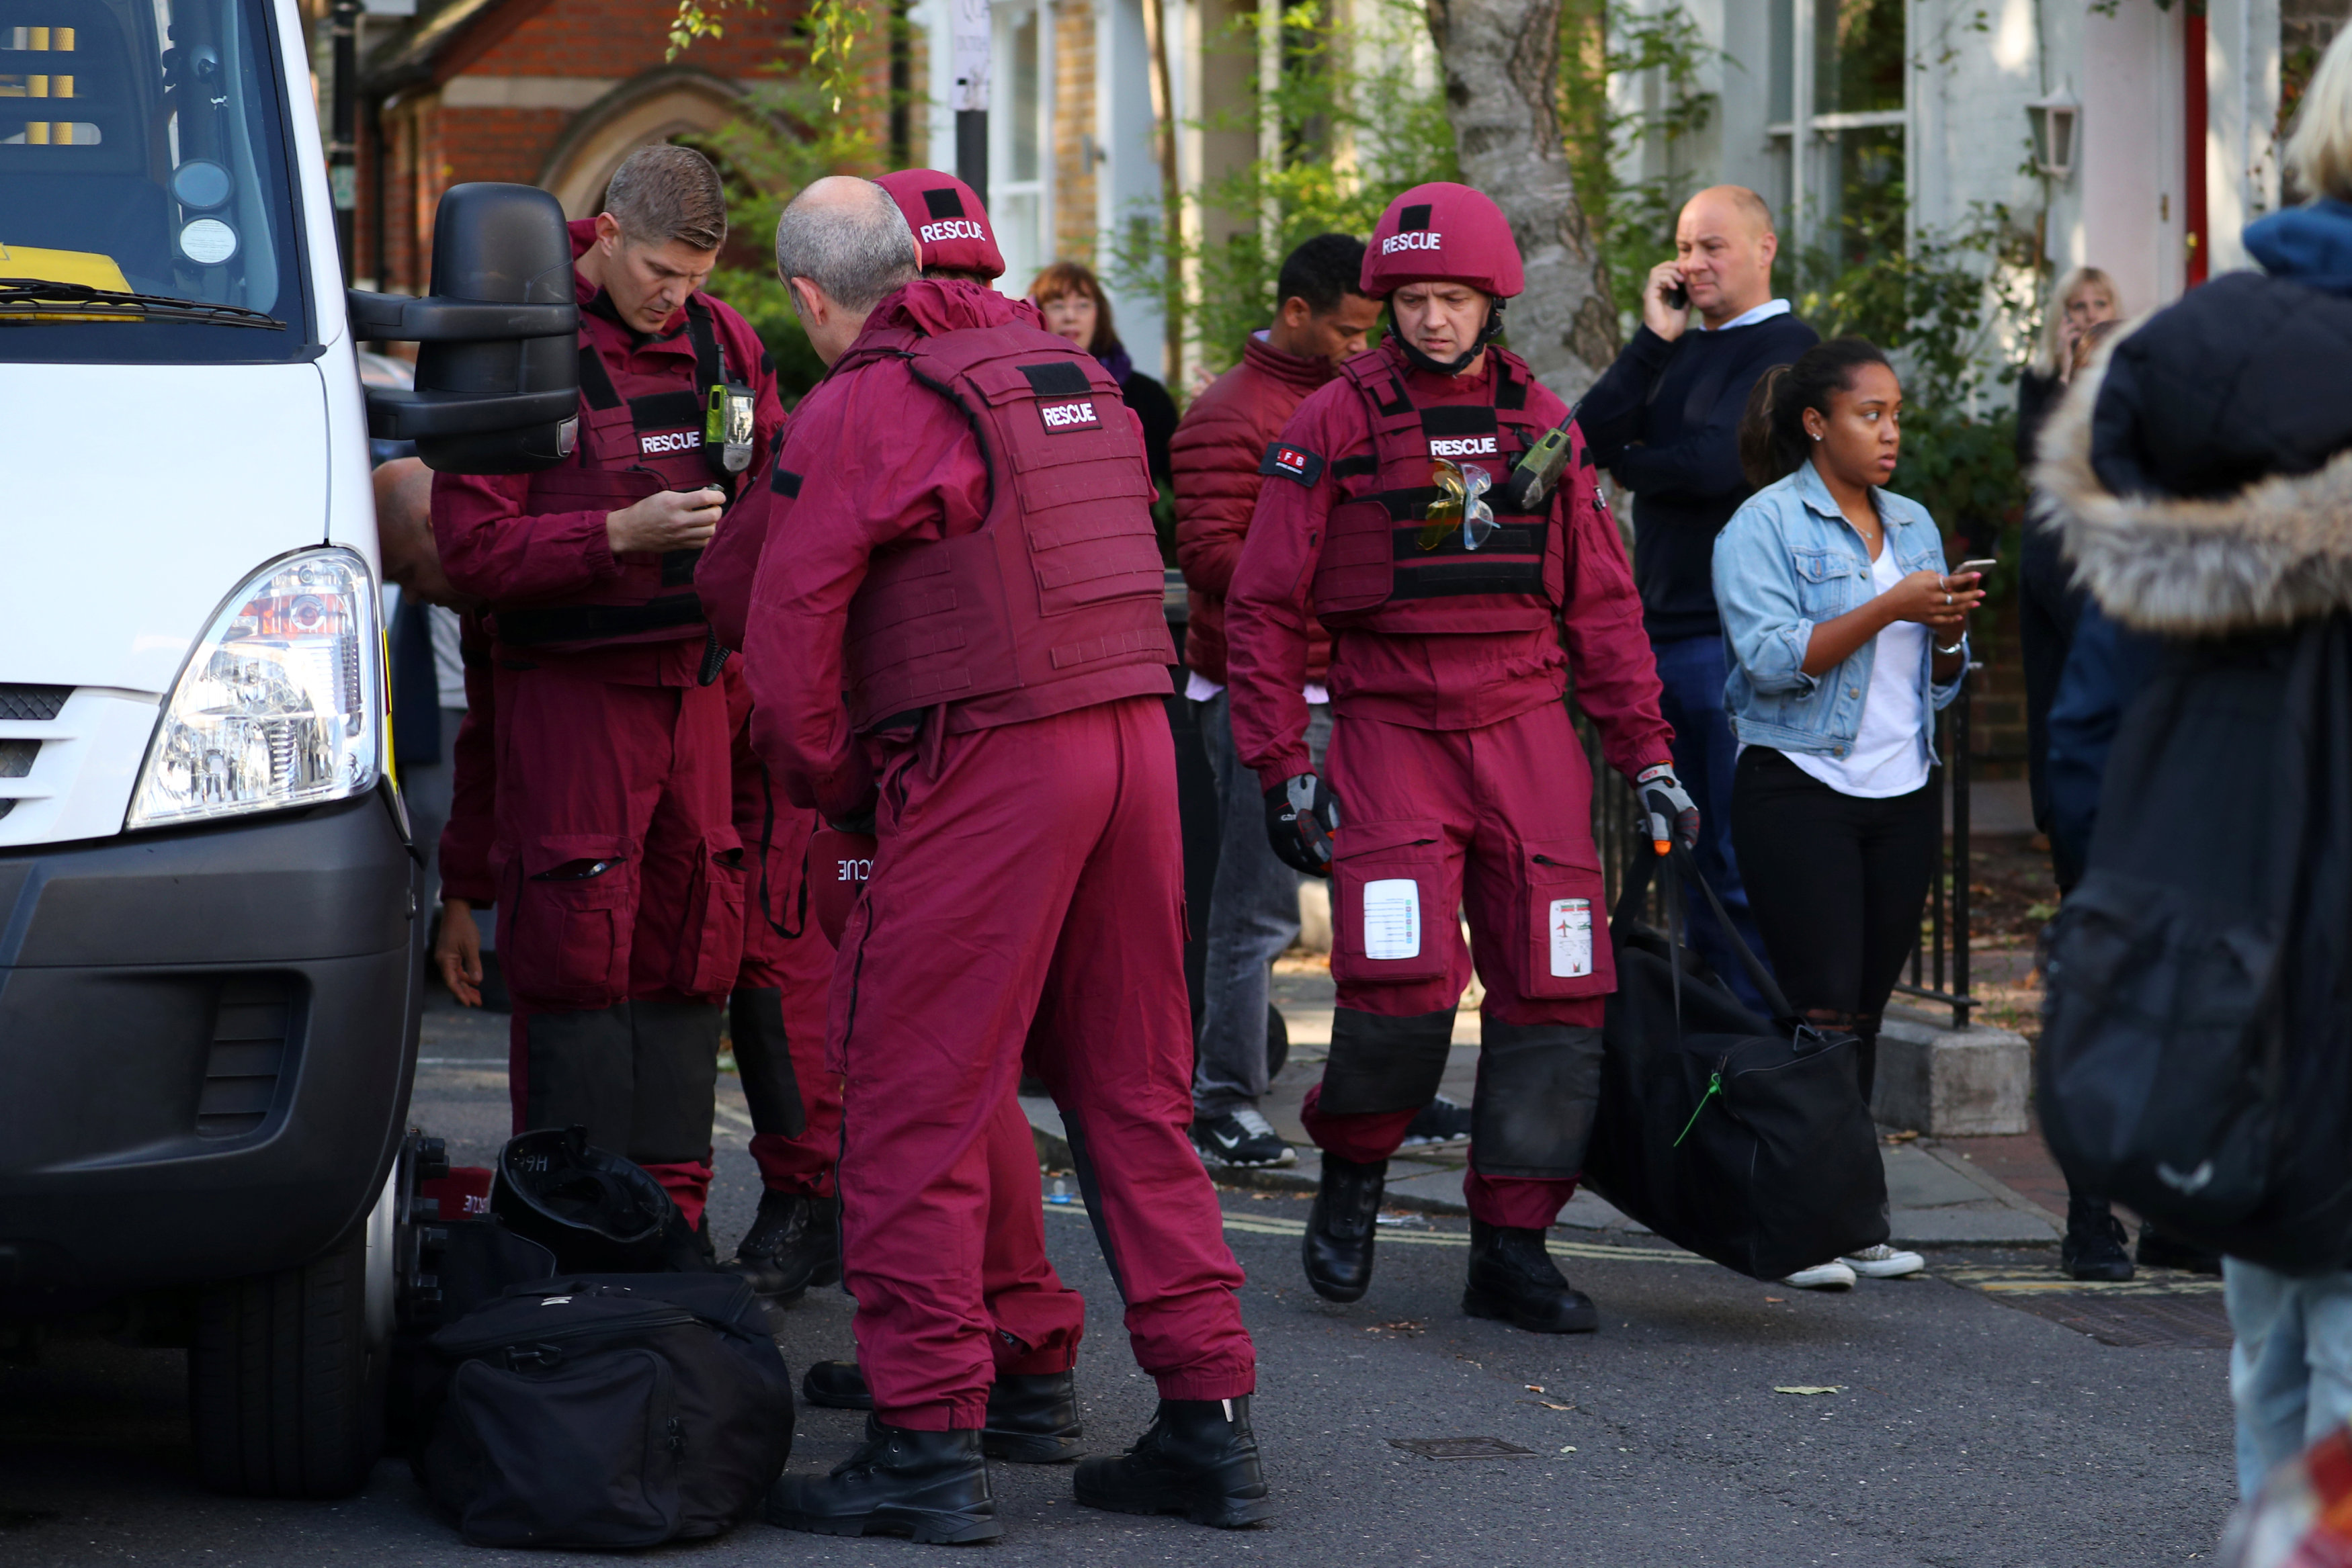 Members of a bomb disposal squad stand in the street near Parsons Green tube station in London, Britain September 15, 2017. REUTERS/Hannah McKay